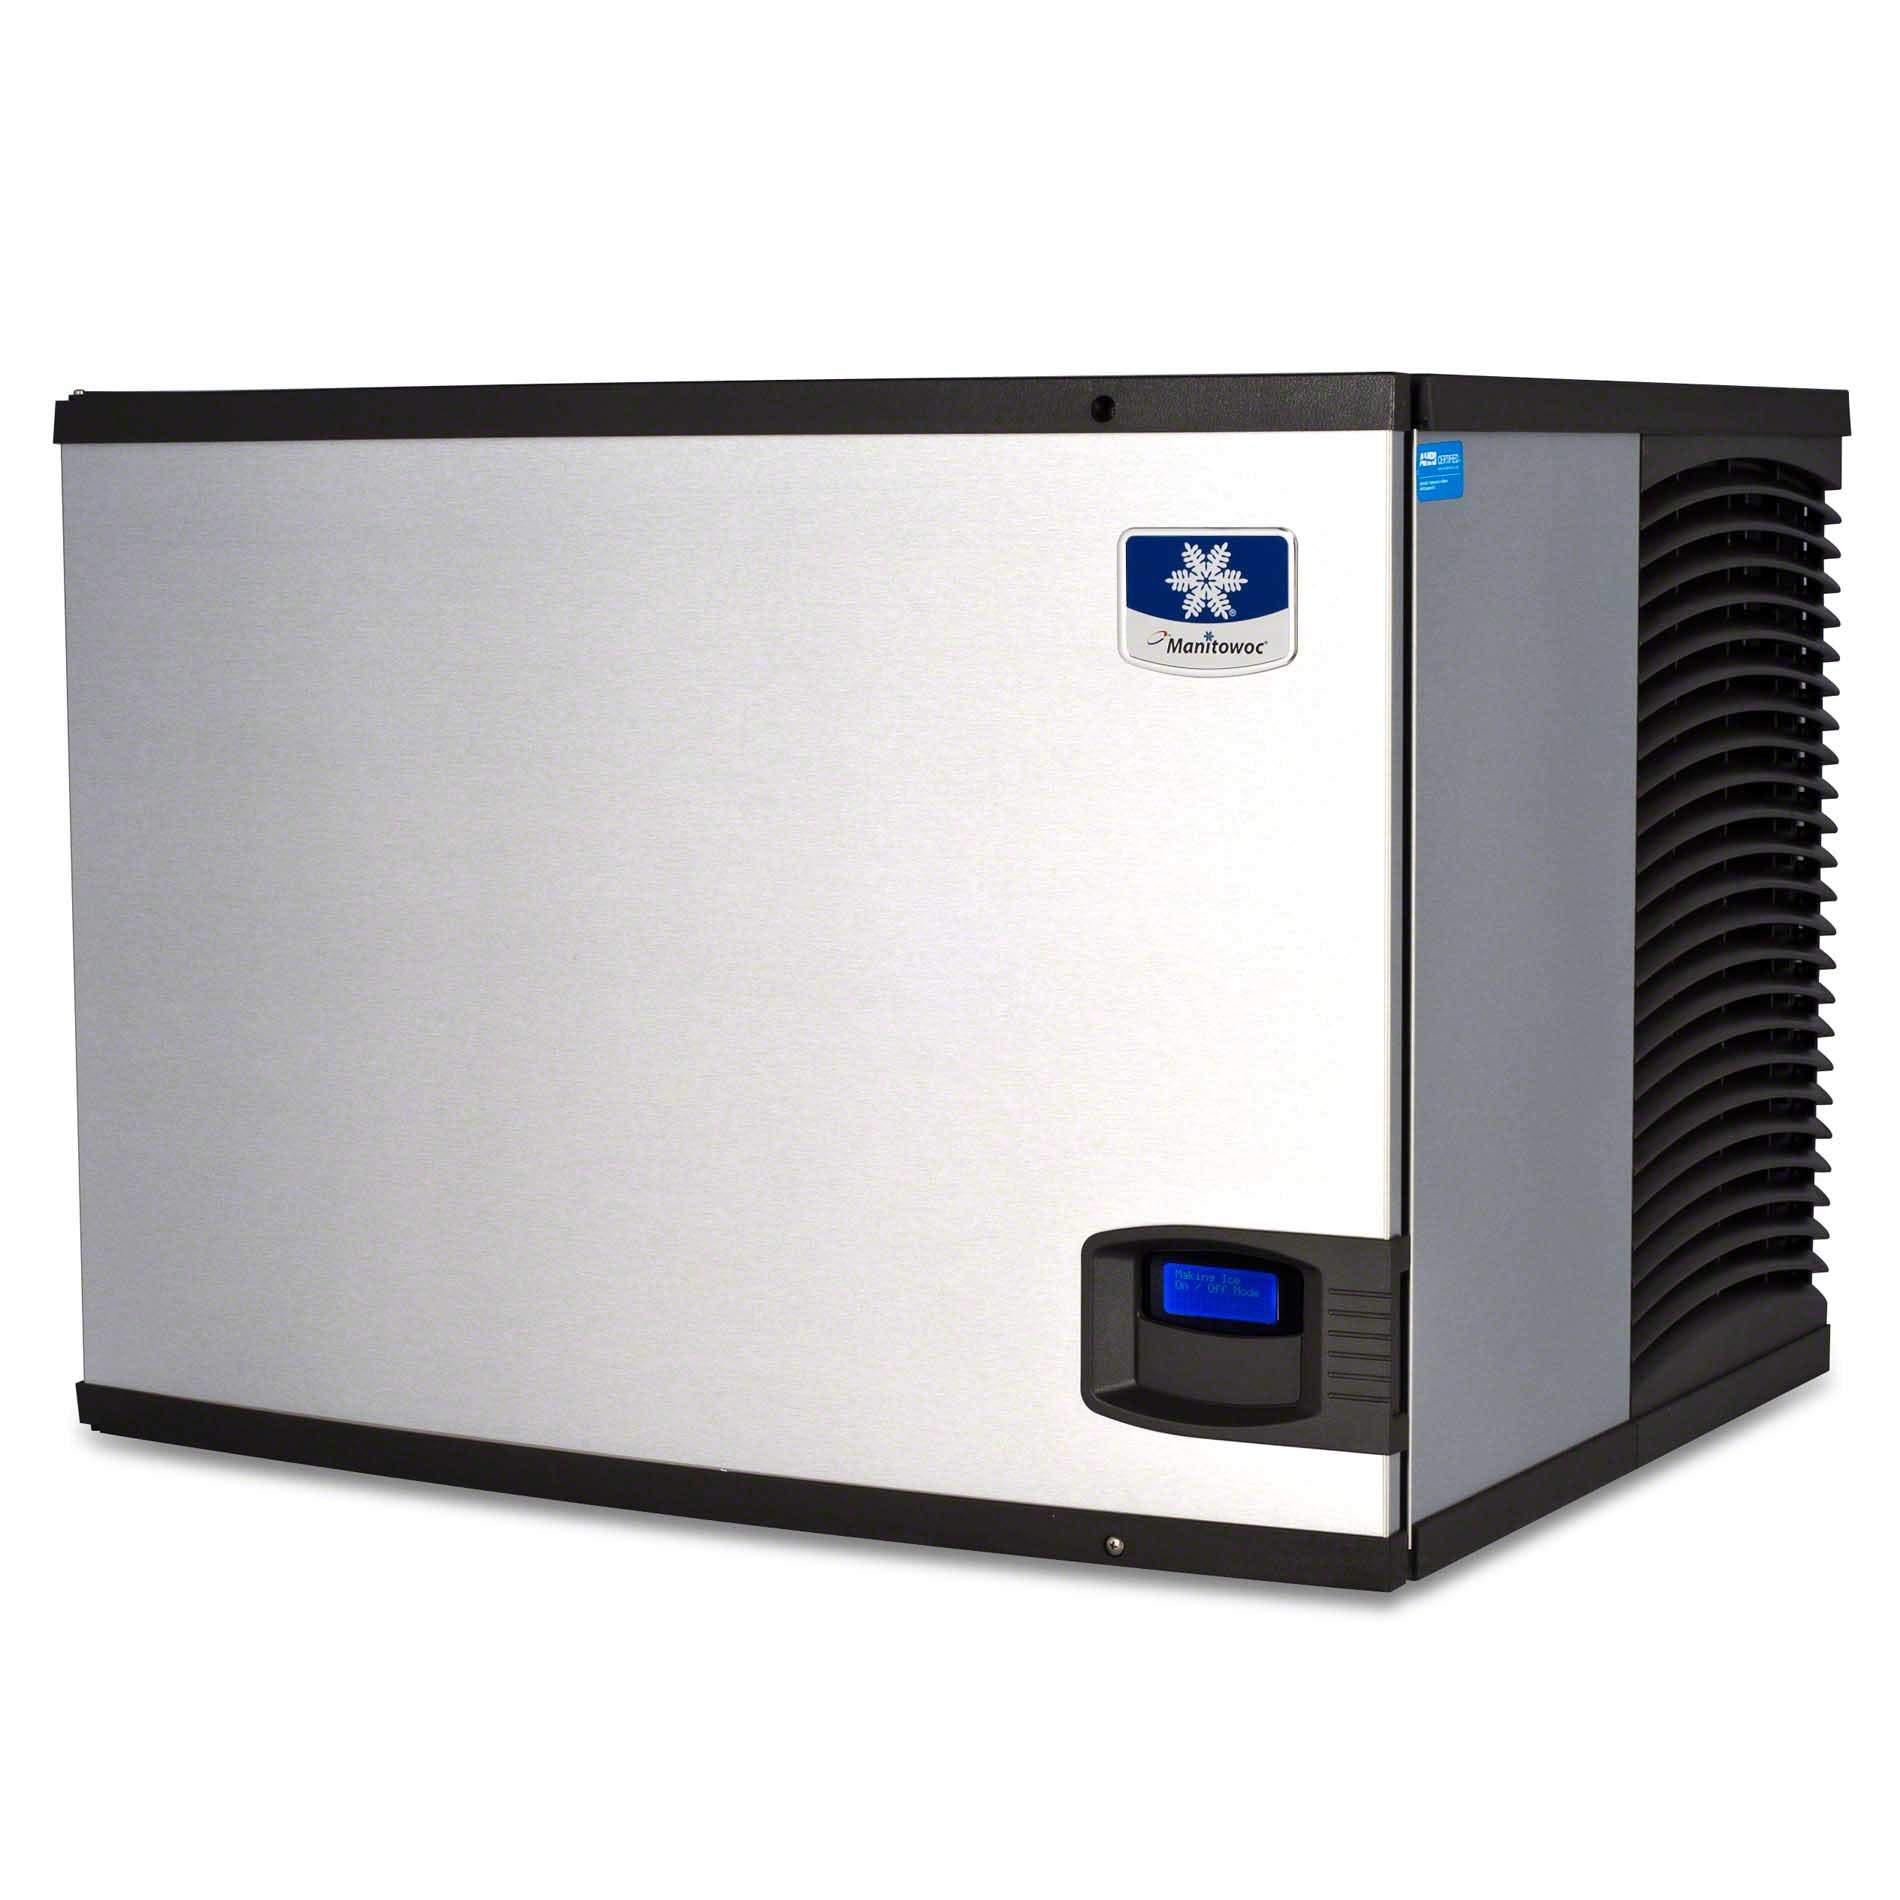 Manitowoc - ID-0503W 550 lb Full Size Cube Ice Machine - Indigo Series Ice machine sold by Food Service Warehouse